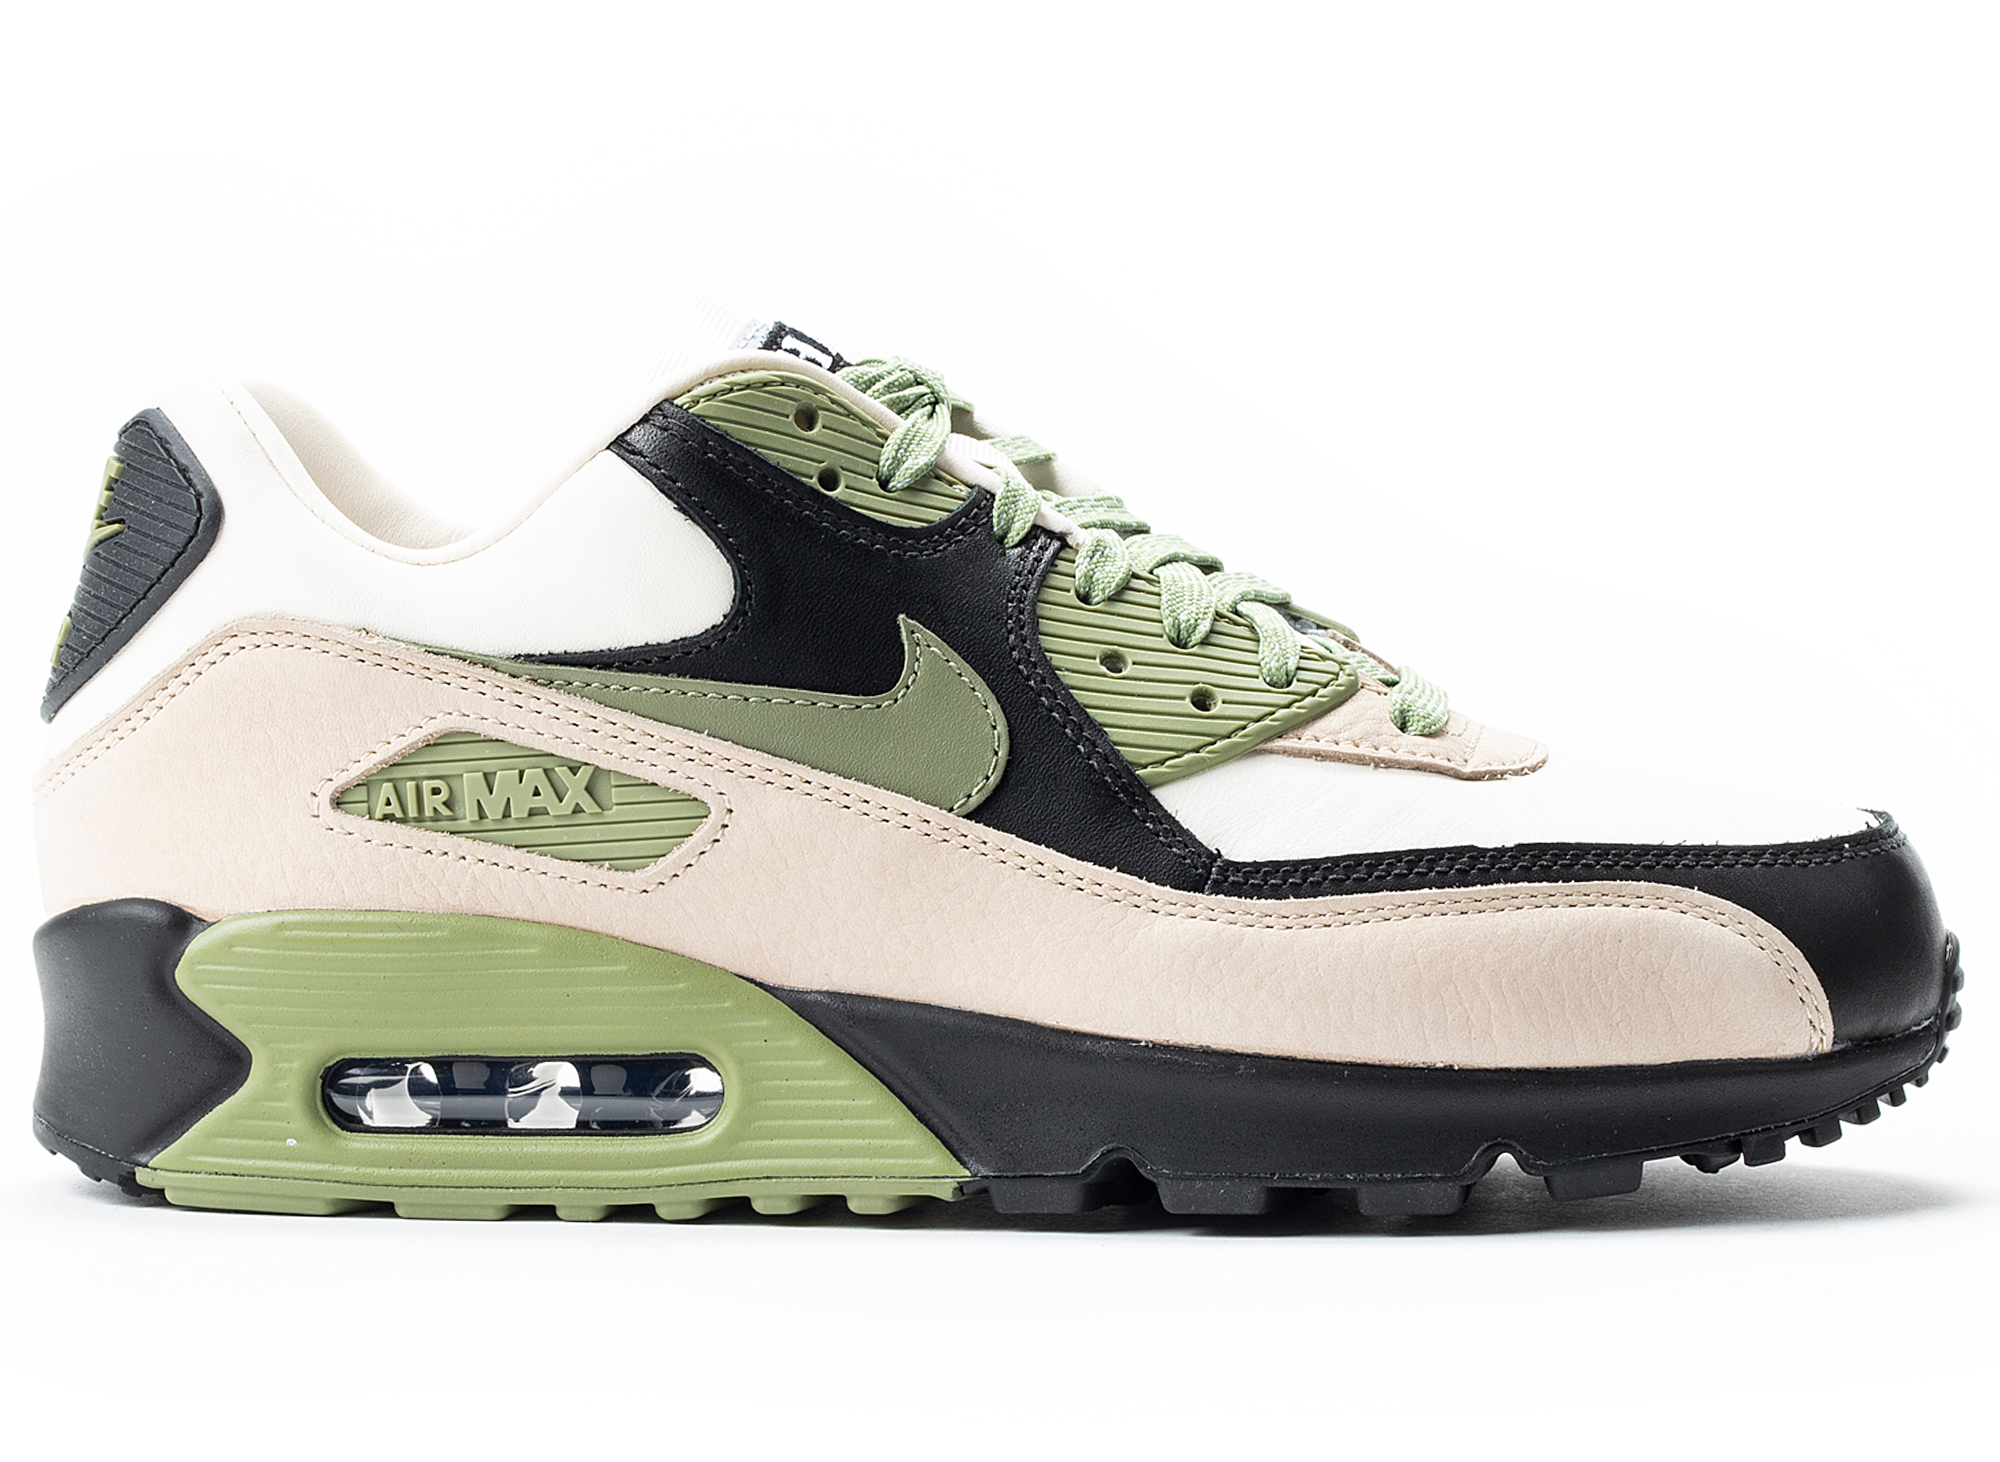 Nike Air Max 90 NRG 'Lahar Escape'